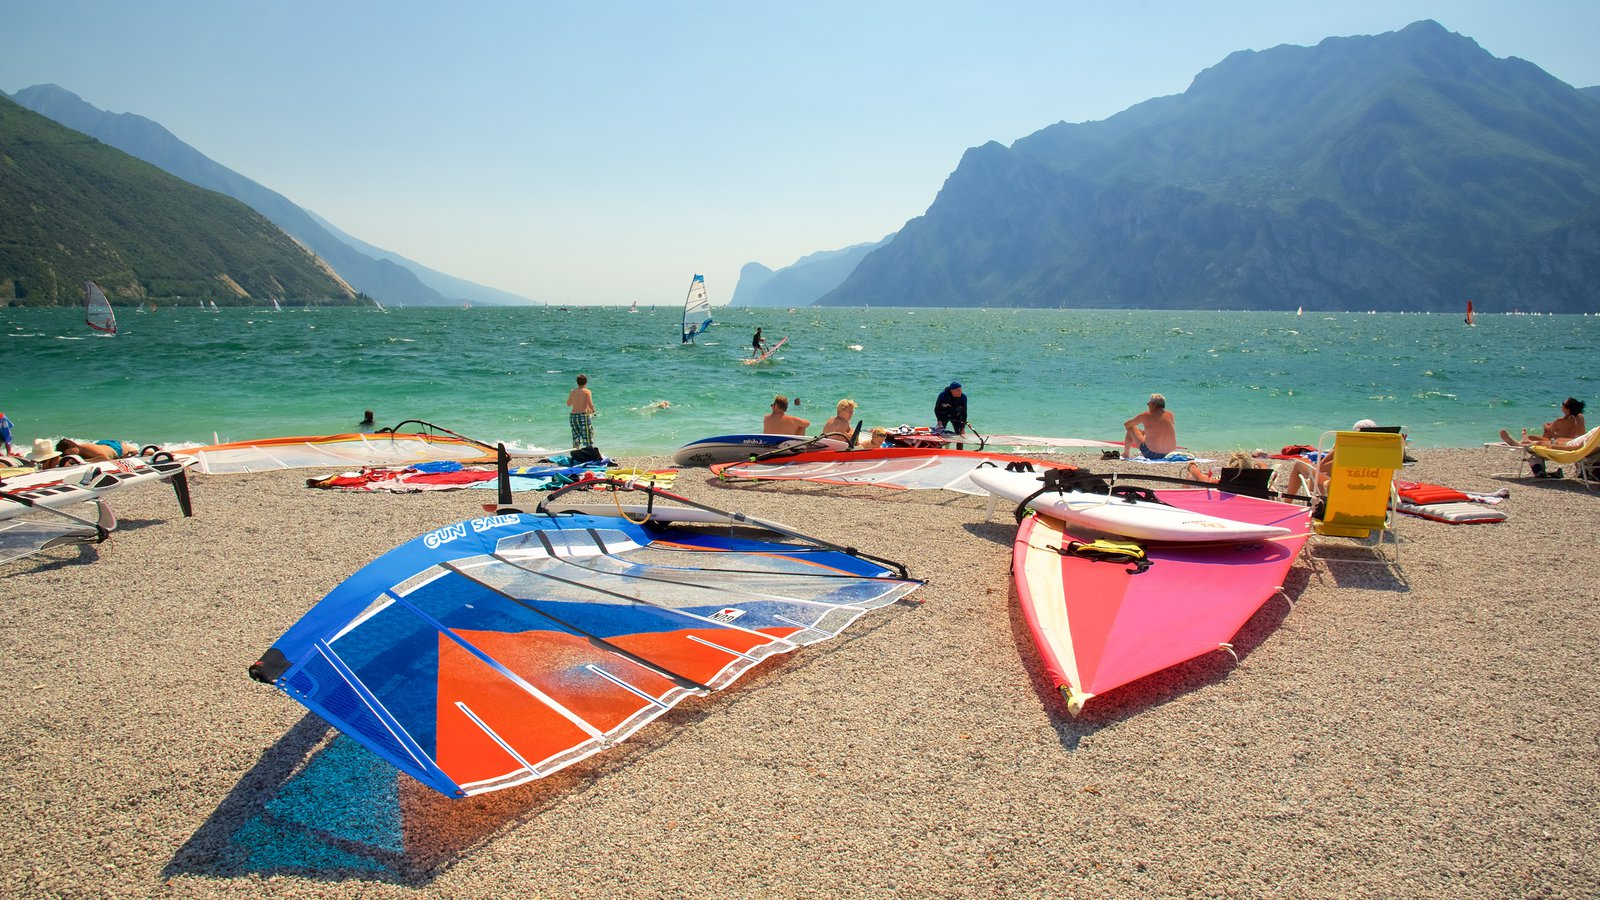 Nago-Torbole featuring mountains, windsurfing and a pebble beach